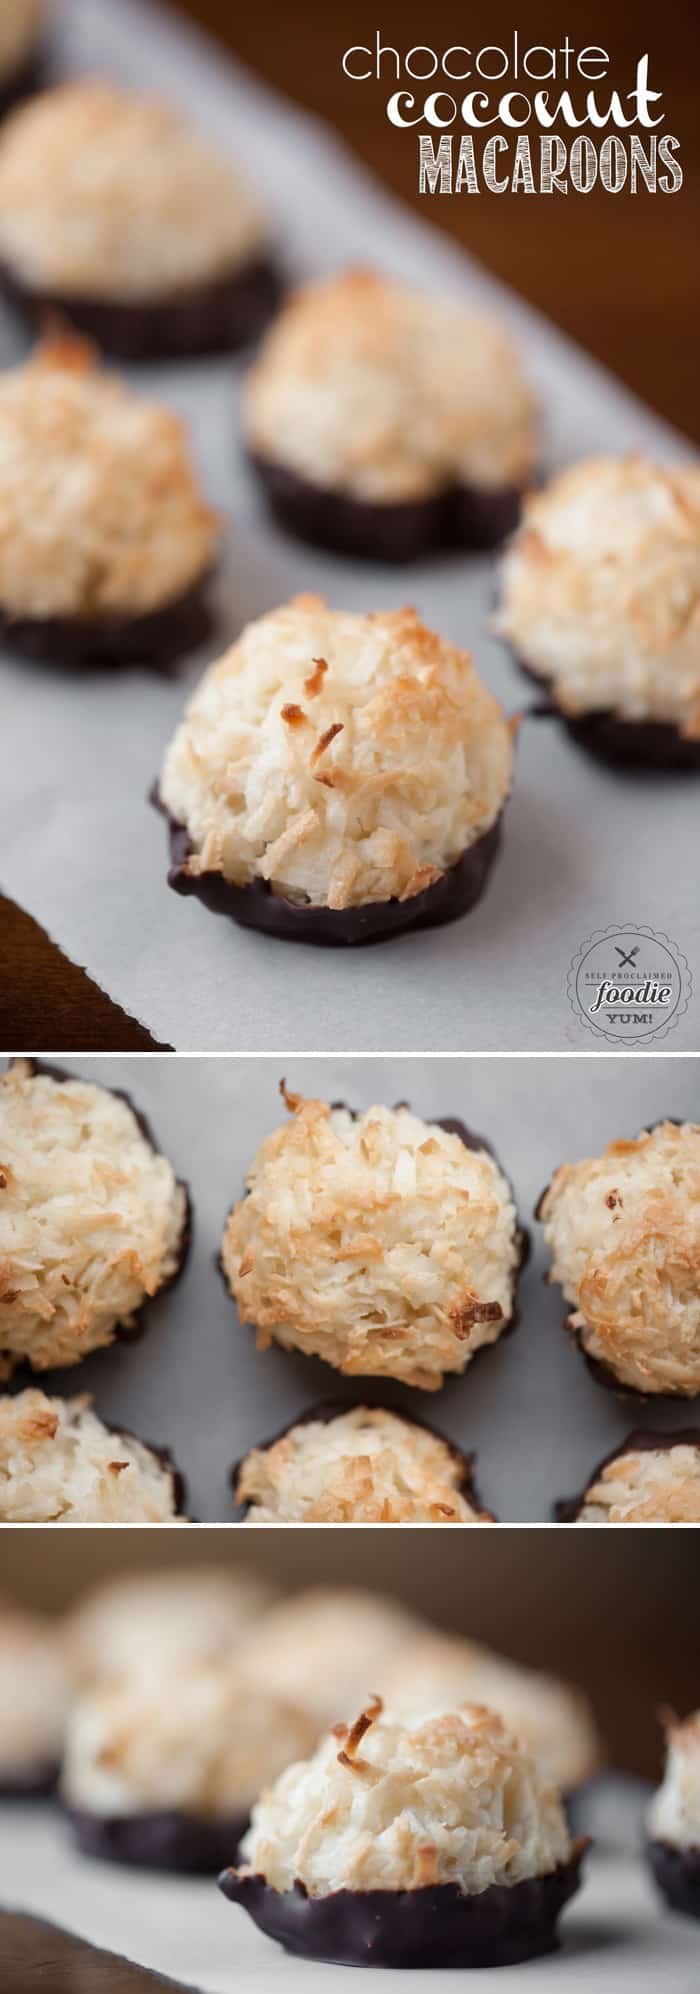 Chocolate Coconut Macaroons | Self Proclaimed Foodie